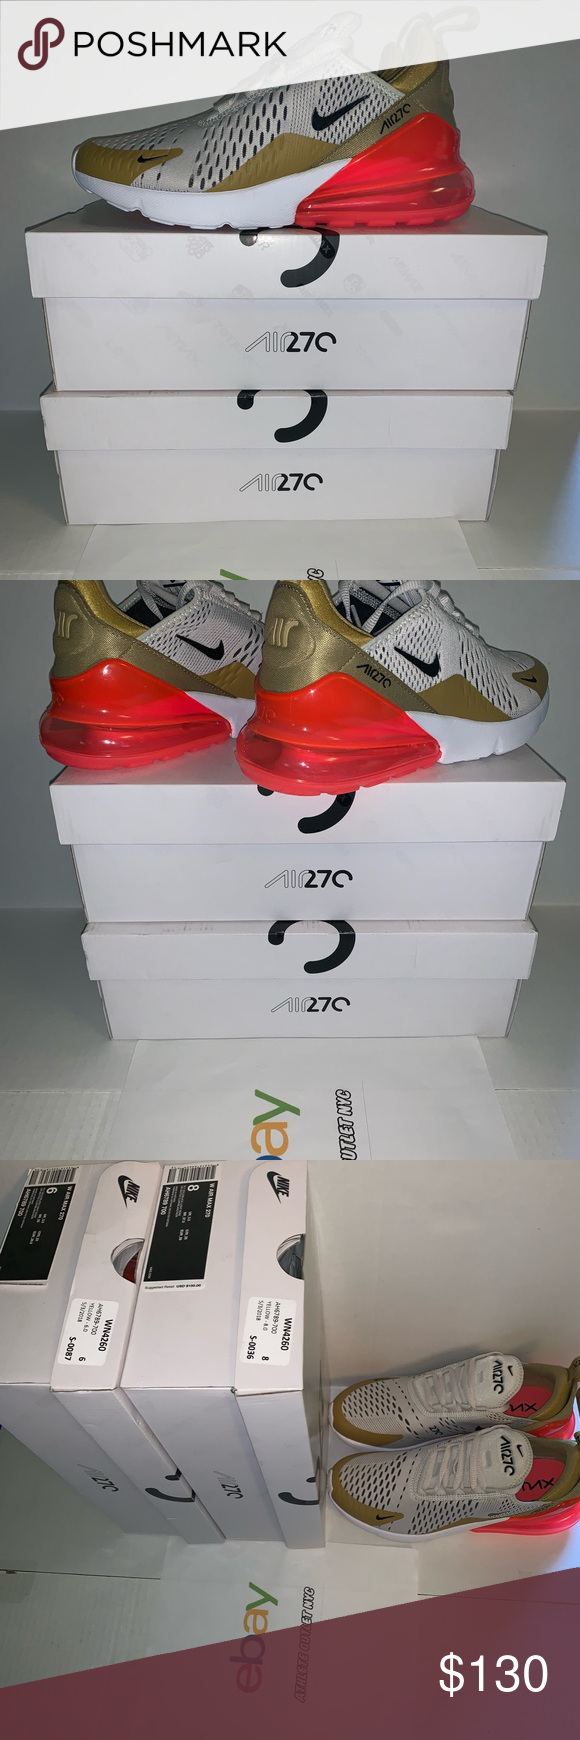 be5dc7c20a New Womens Nike air Max 270 Gold Pink AH6789-700 New ! Women's Nike Air Max  270